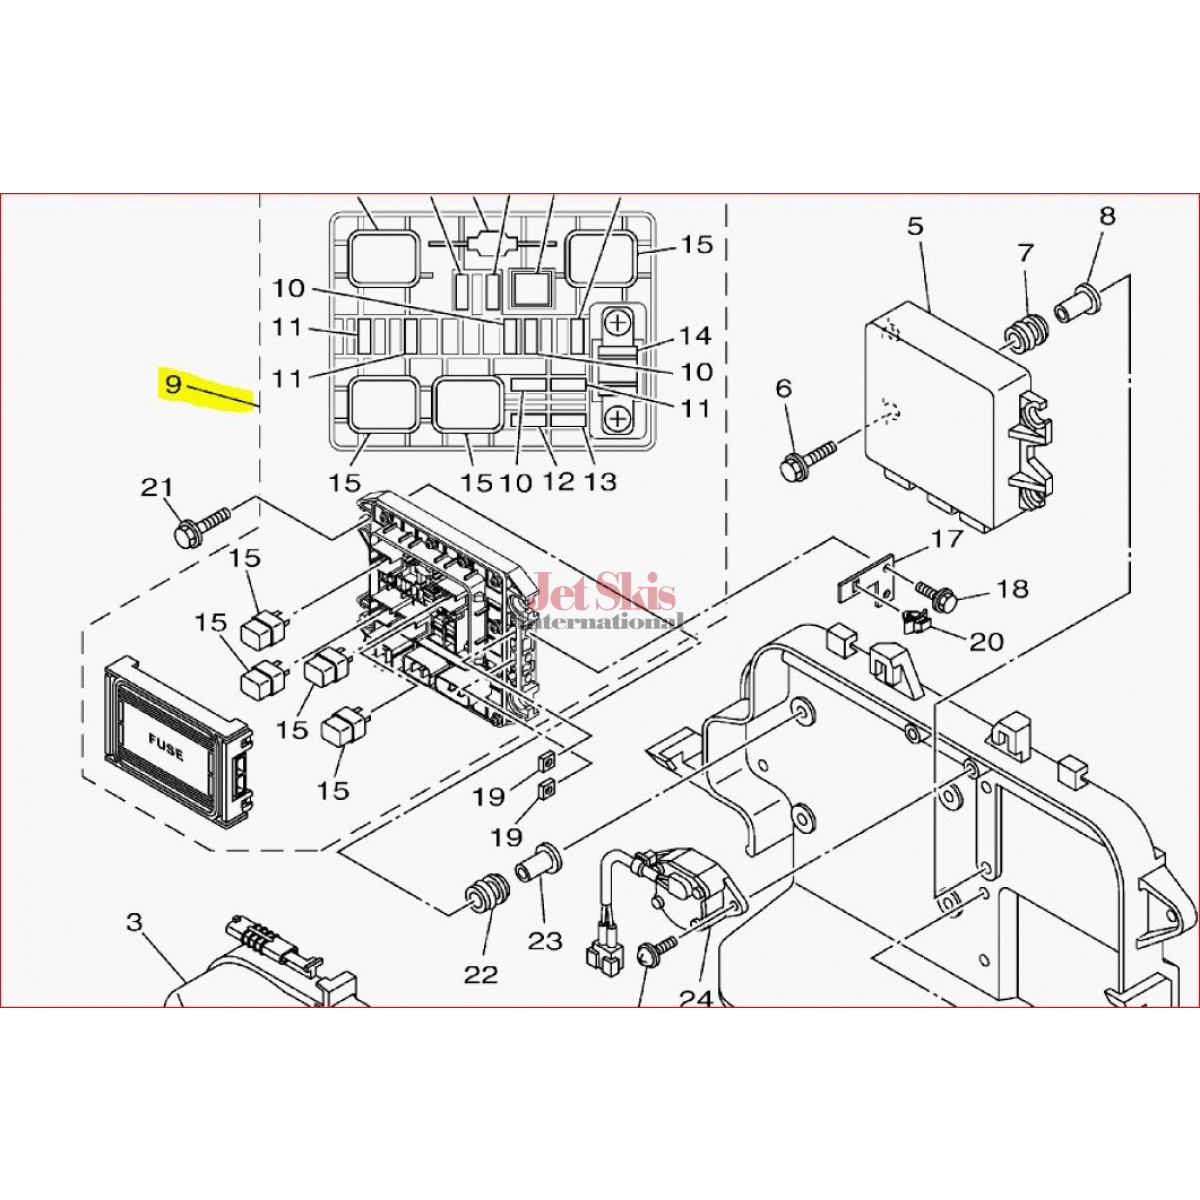 Sea Doo Parts Finder. Parts. Wiring Diagram Images